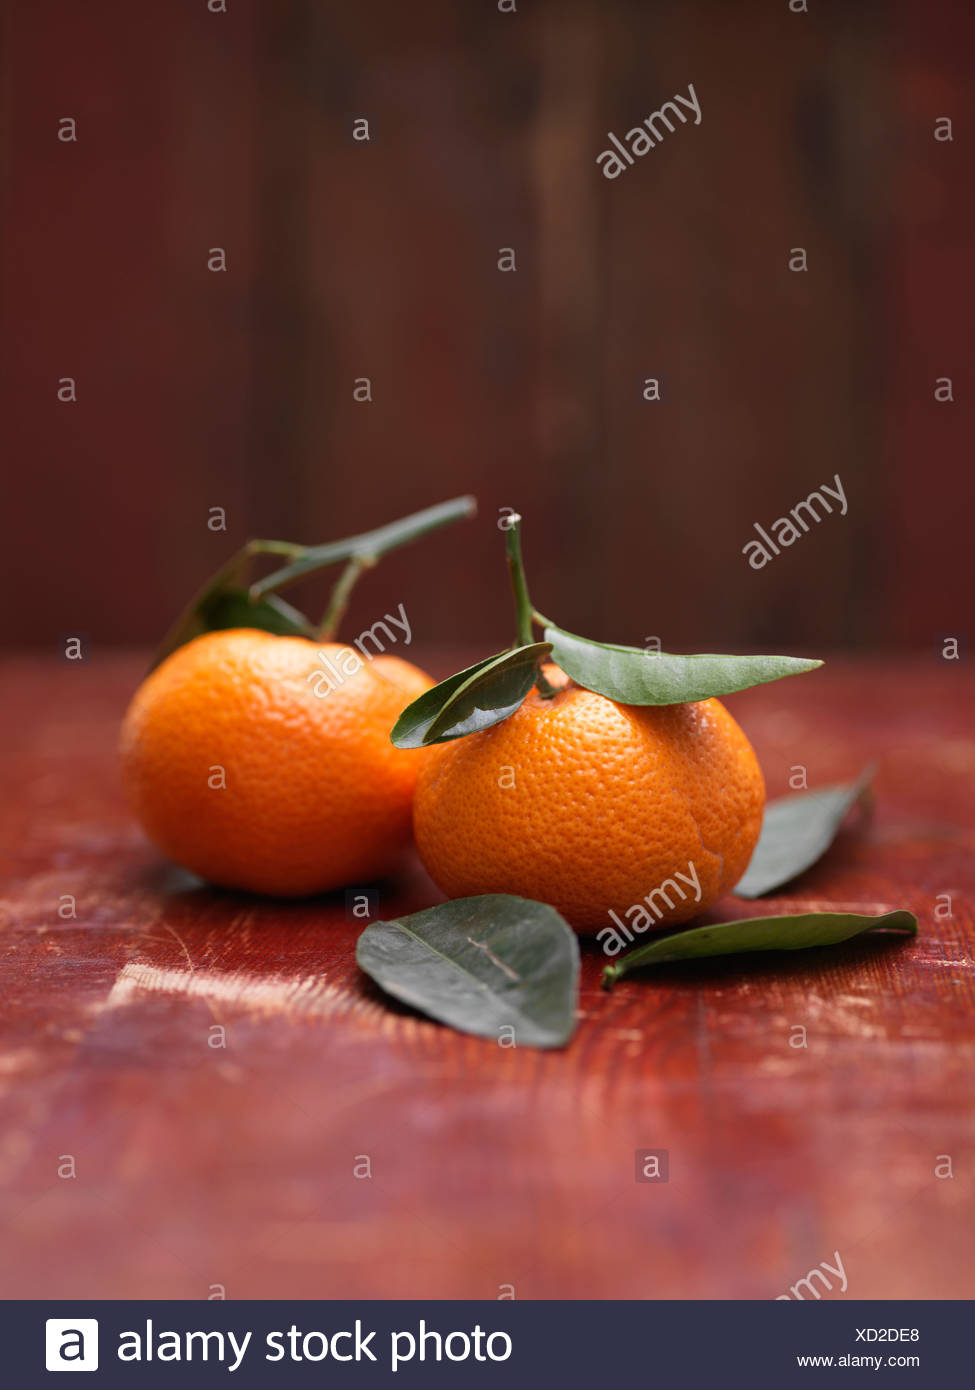 Satsumas with stems and leaves - Stock Image